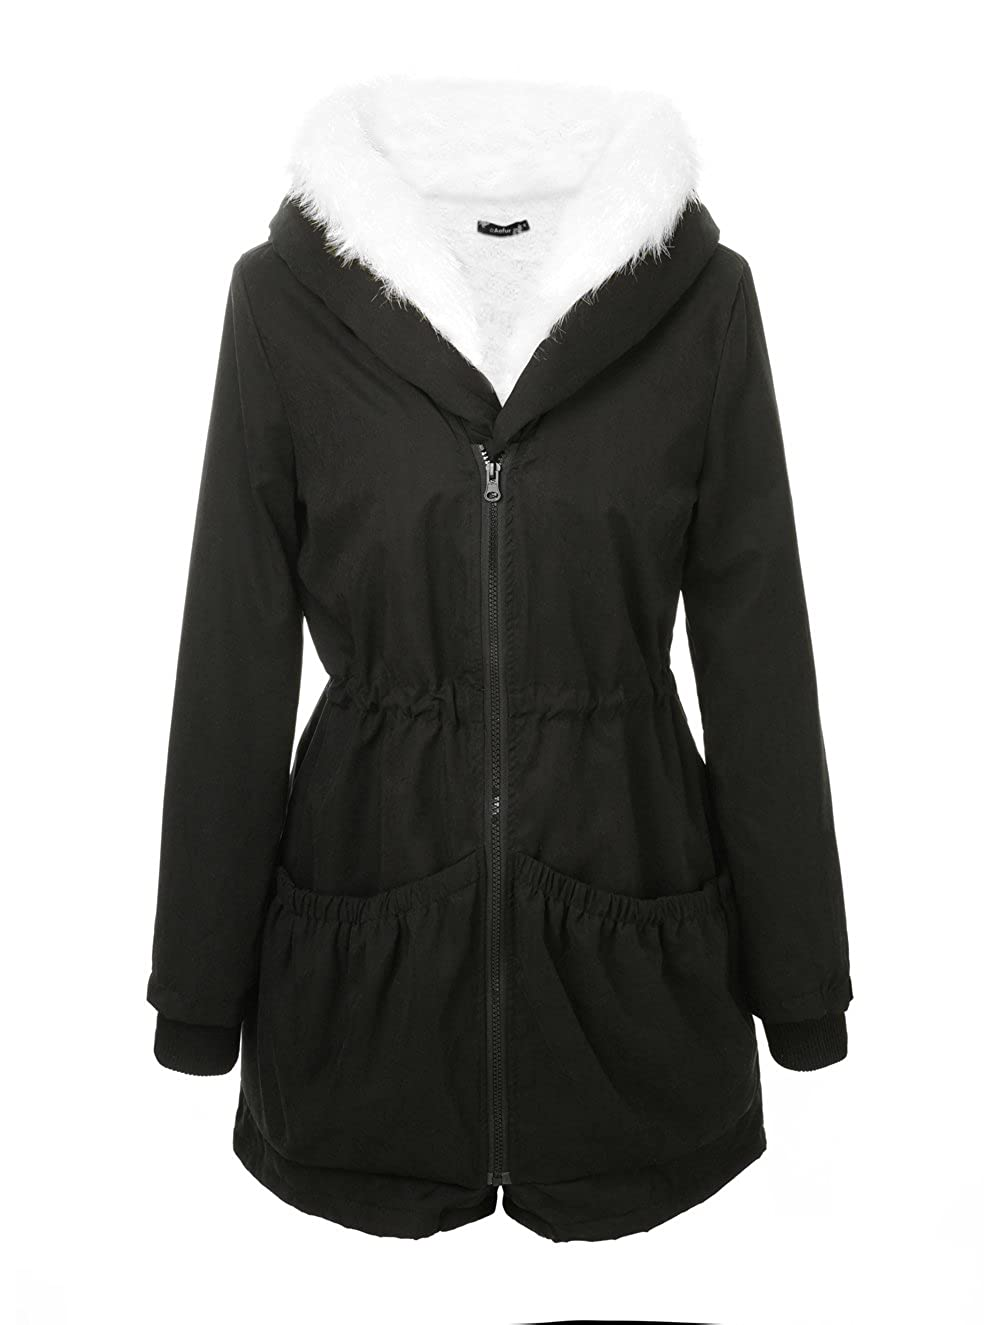 Black Aofur Womens Casual Coat Hooded Jacket Winter Parka Zip Lining with Fur